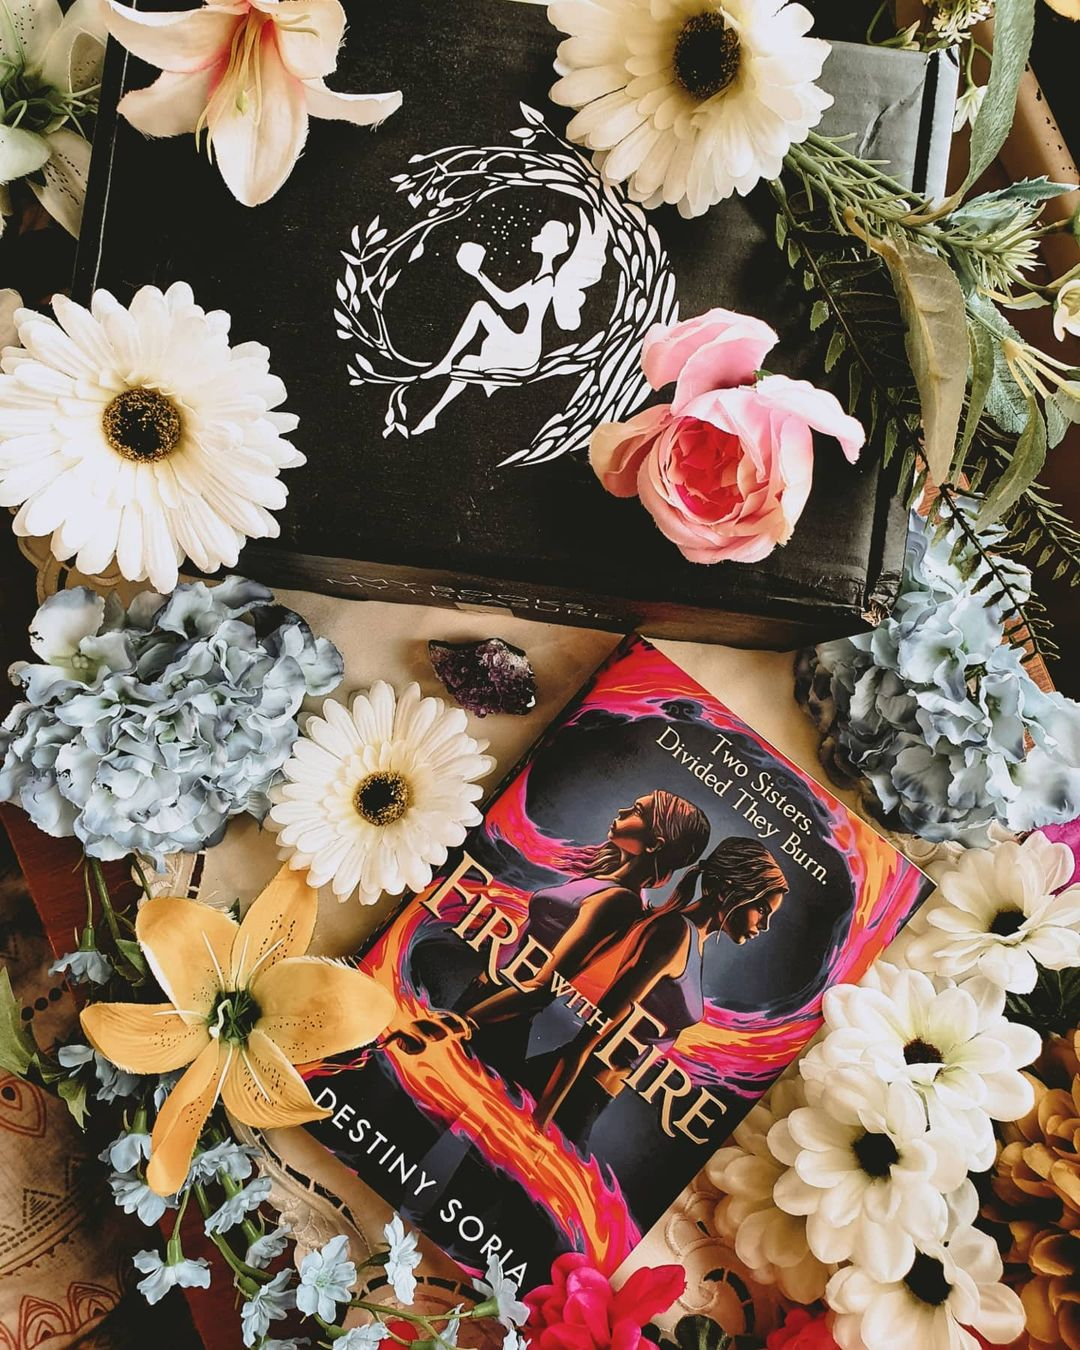 Fire With Fire Readalong: Day 4